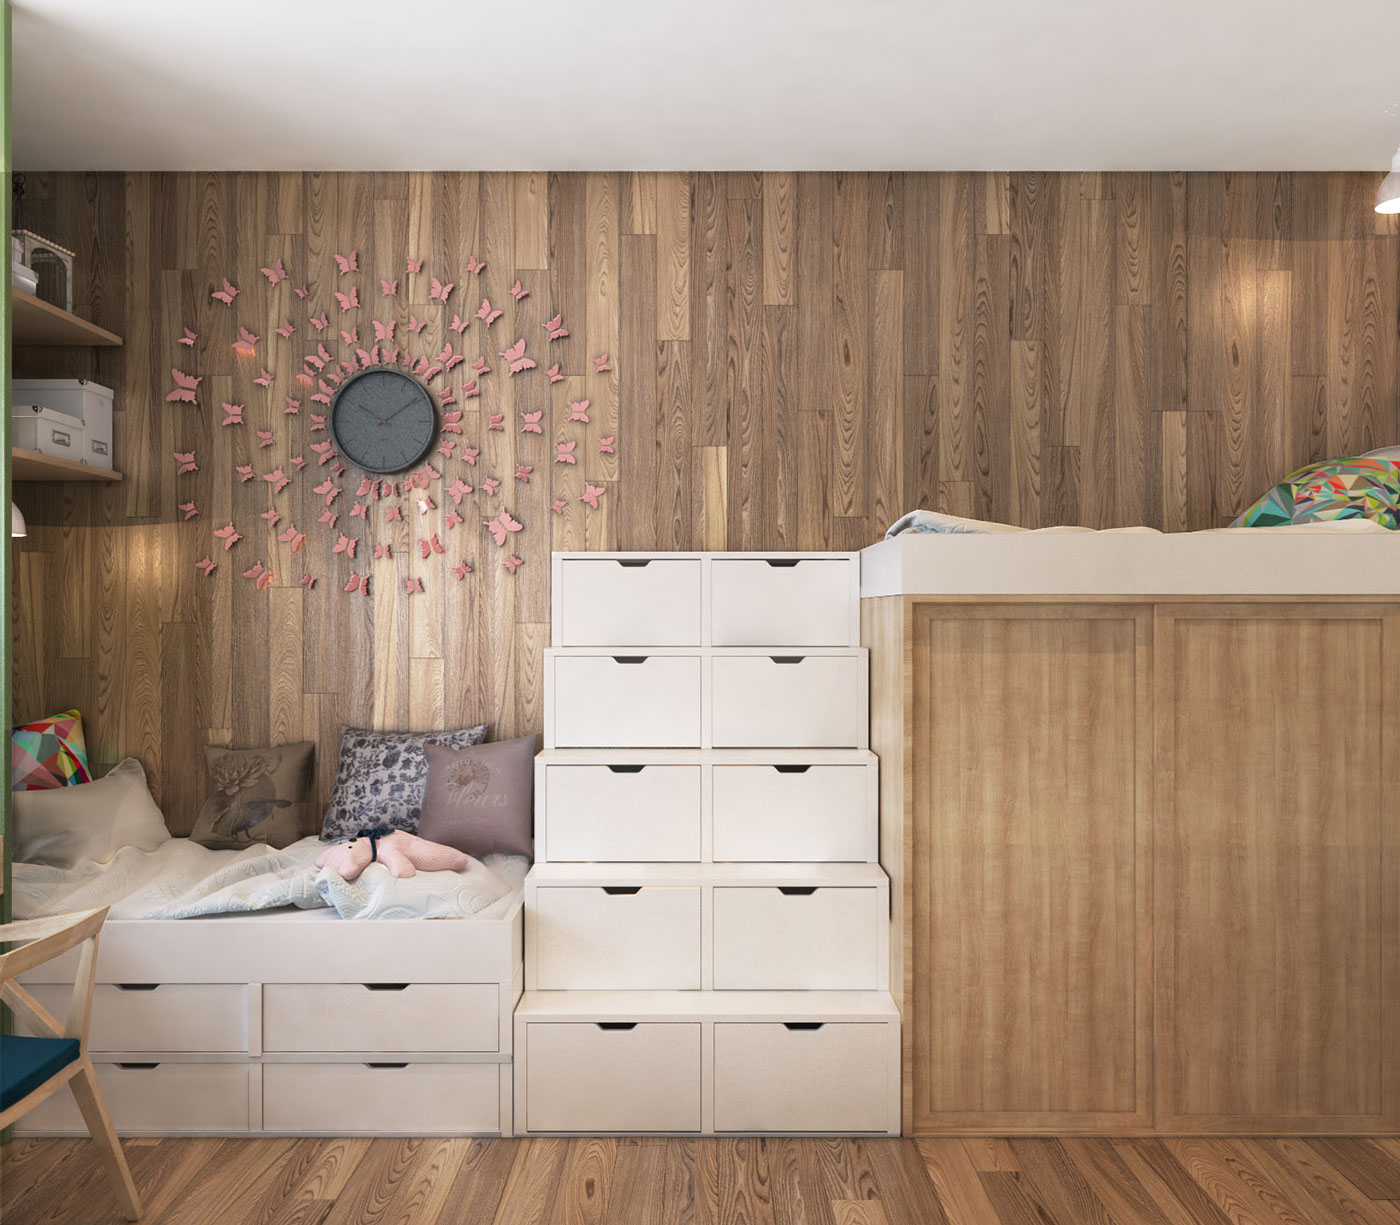 Natural Wood Wall Paneling - A contemporary apartment with lots of open space